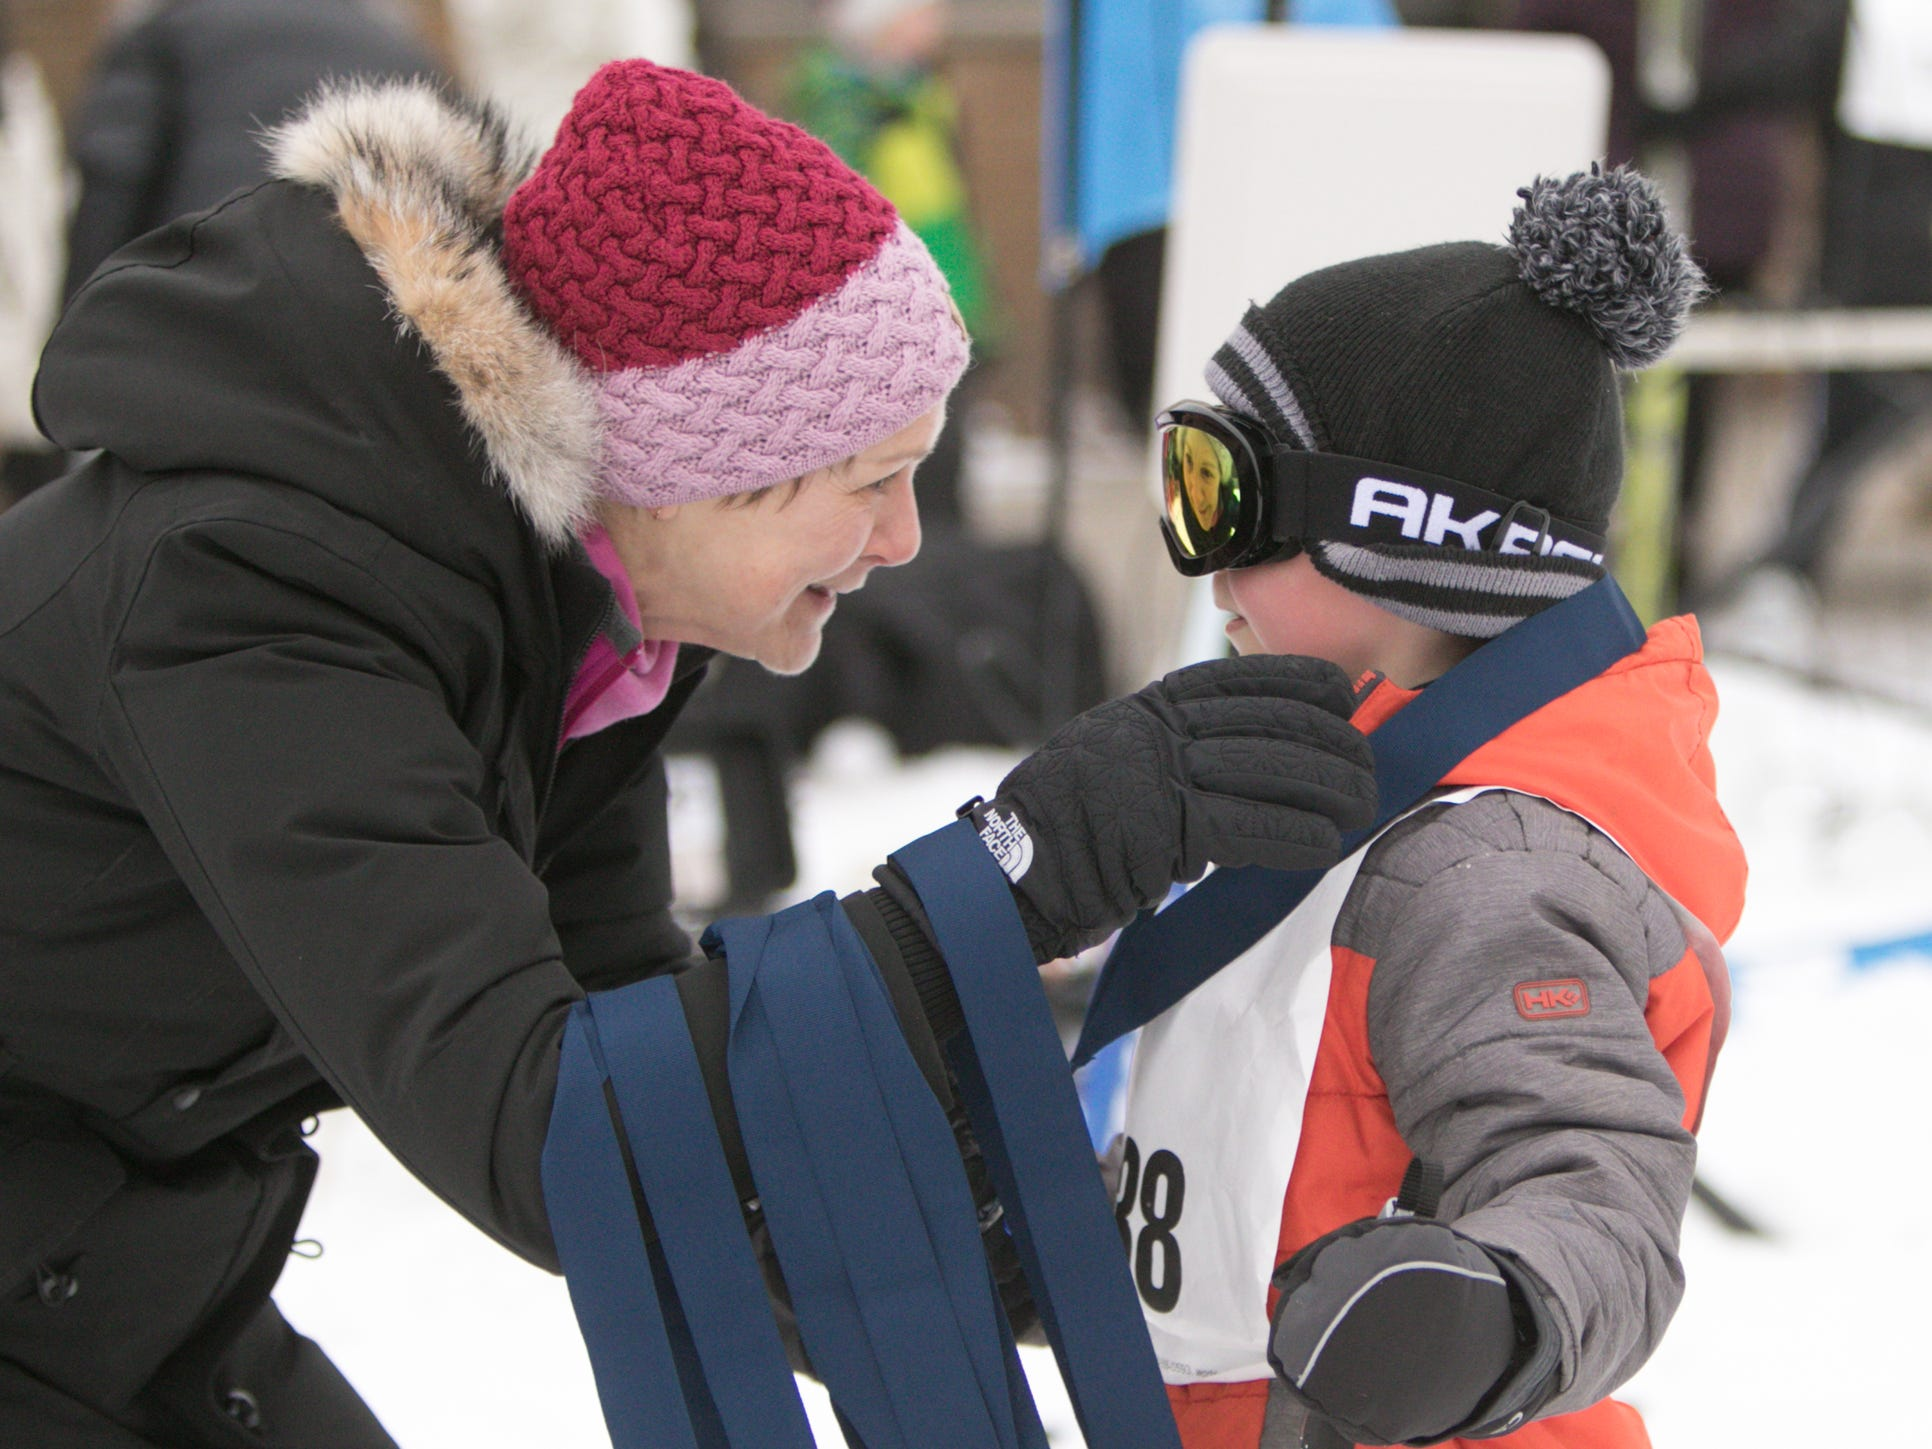 Volunteer Amy Kostrzewa, with Team NordicSkiRacer, presents 7-year-old Lukas Ries of Brighton with a ribbon, as each of the children in the Frosty Ski Fest kids' race gets honored upon completing 30 minutes of skiing Saturday, Jan. 12, 2019.